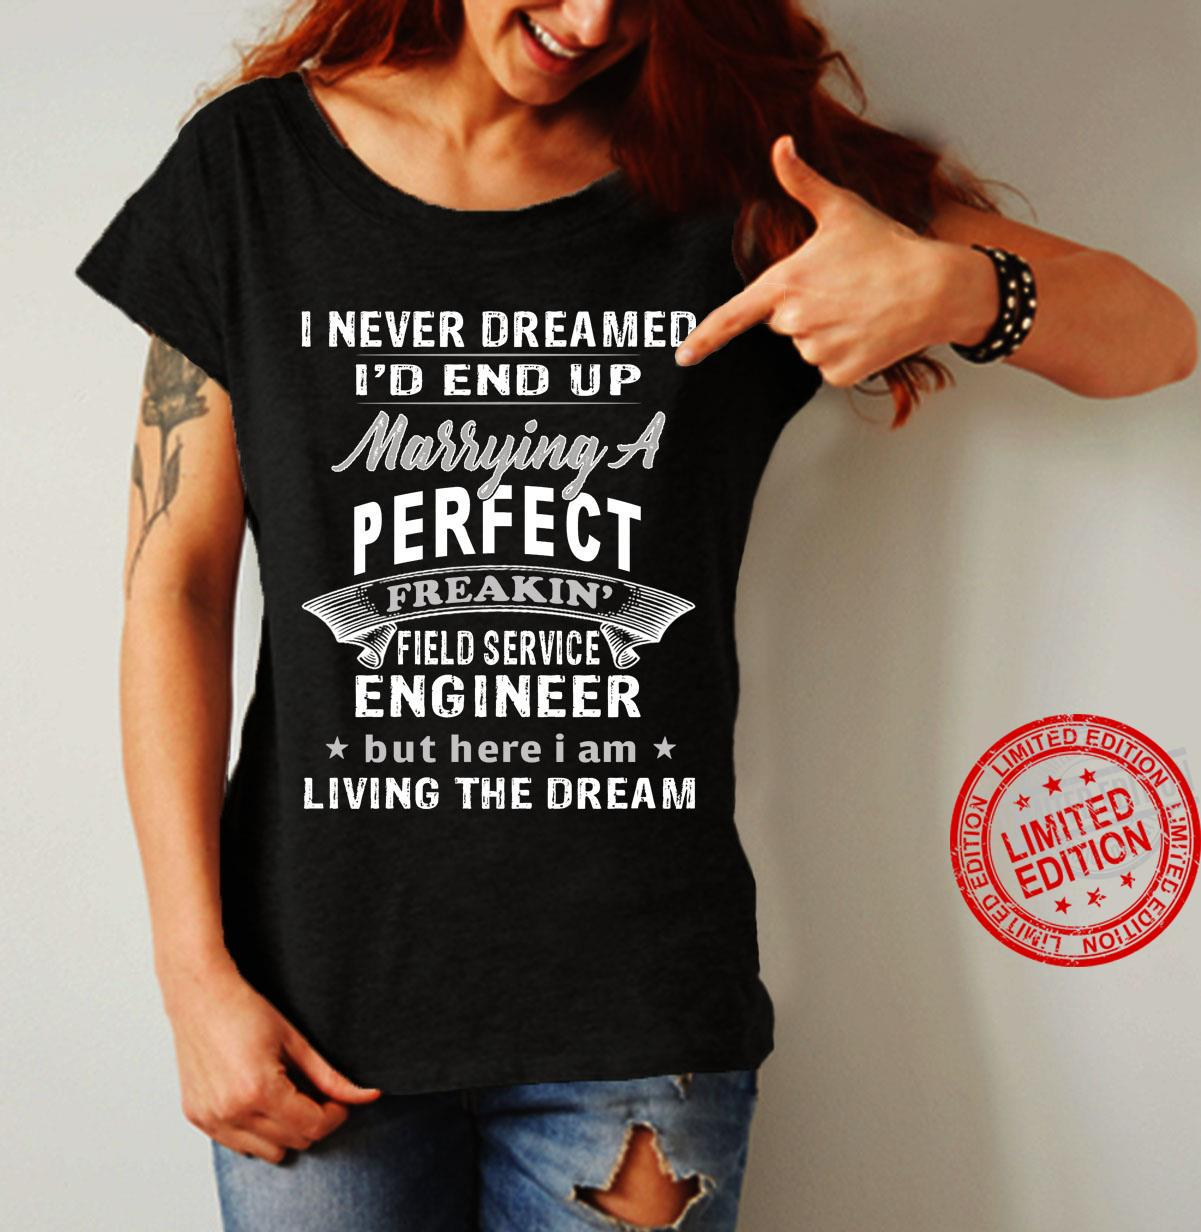 I Never Dreamed I'd End Up Marrying A Perfect Freakin' Engineer But Here I Am Living The Dream Shirt